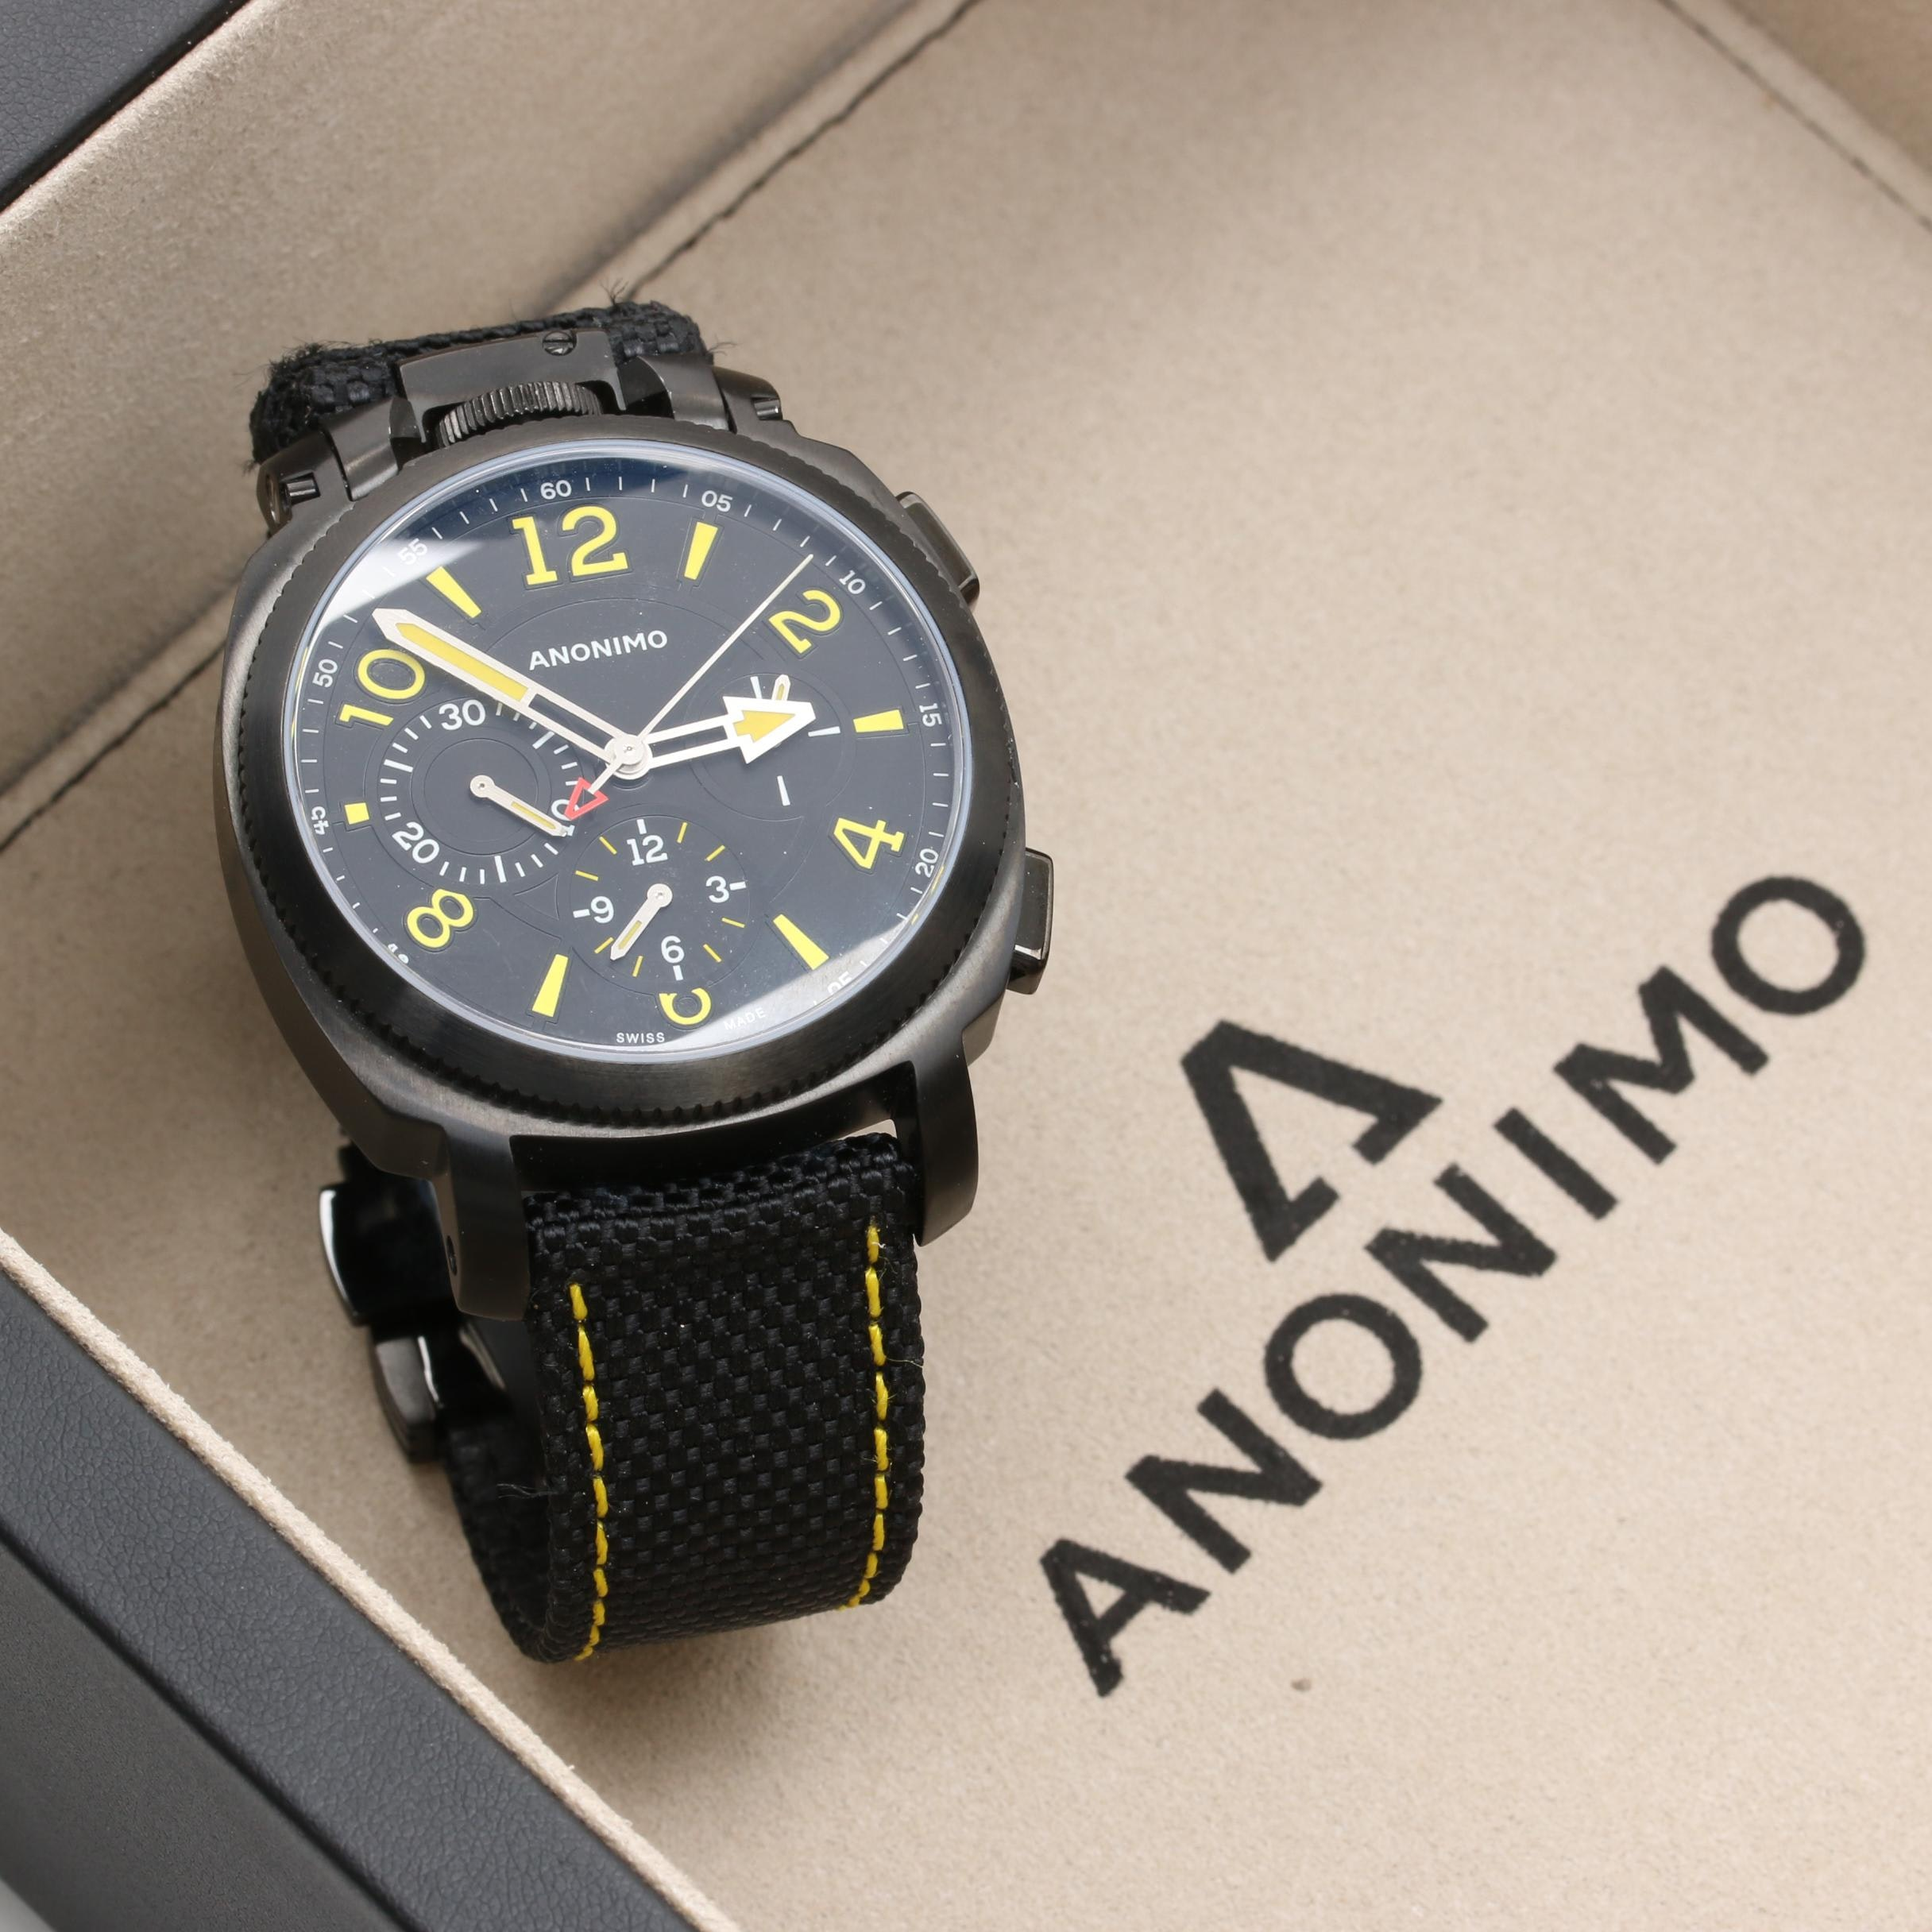 Anomino PVD Coated Stainless Steel Chronograph Wristwatch with Nylon Strap